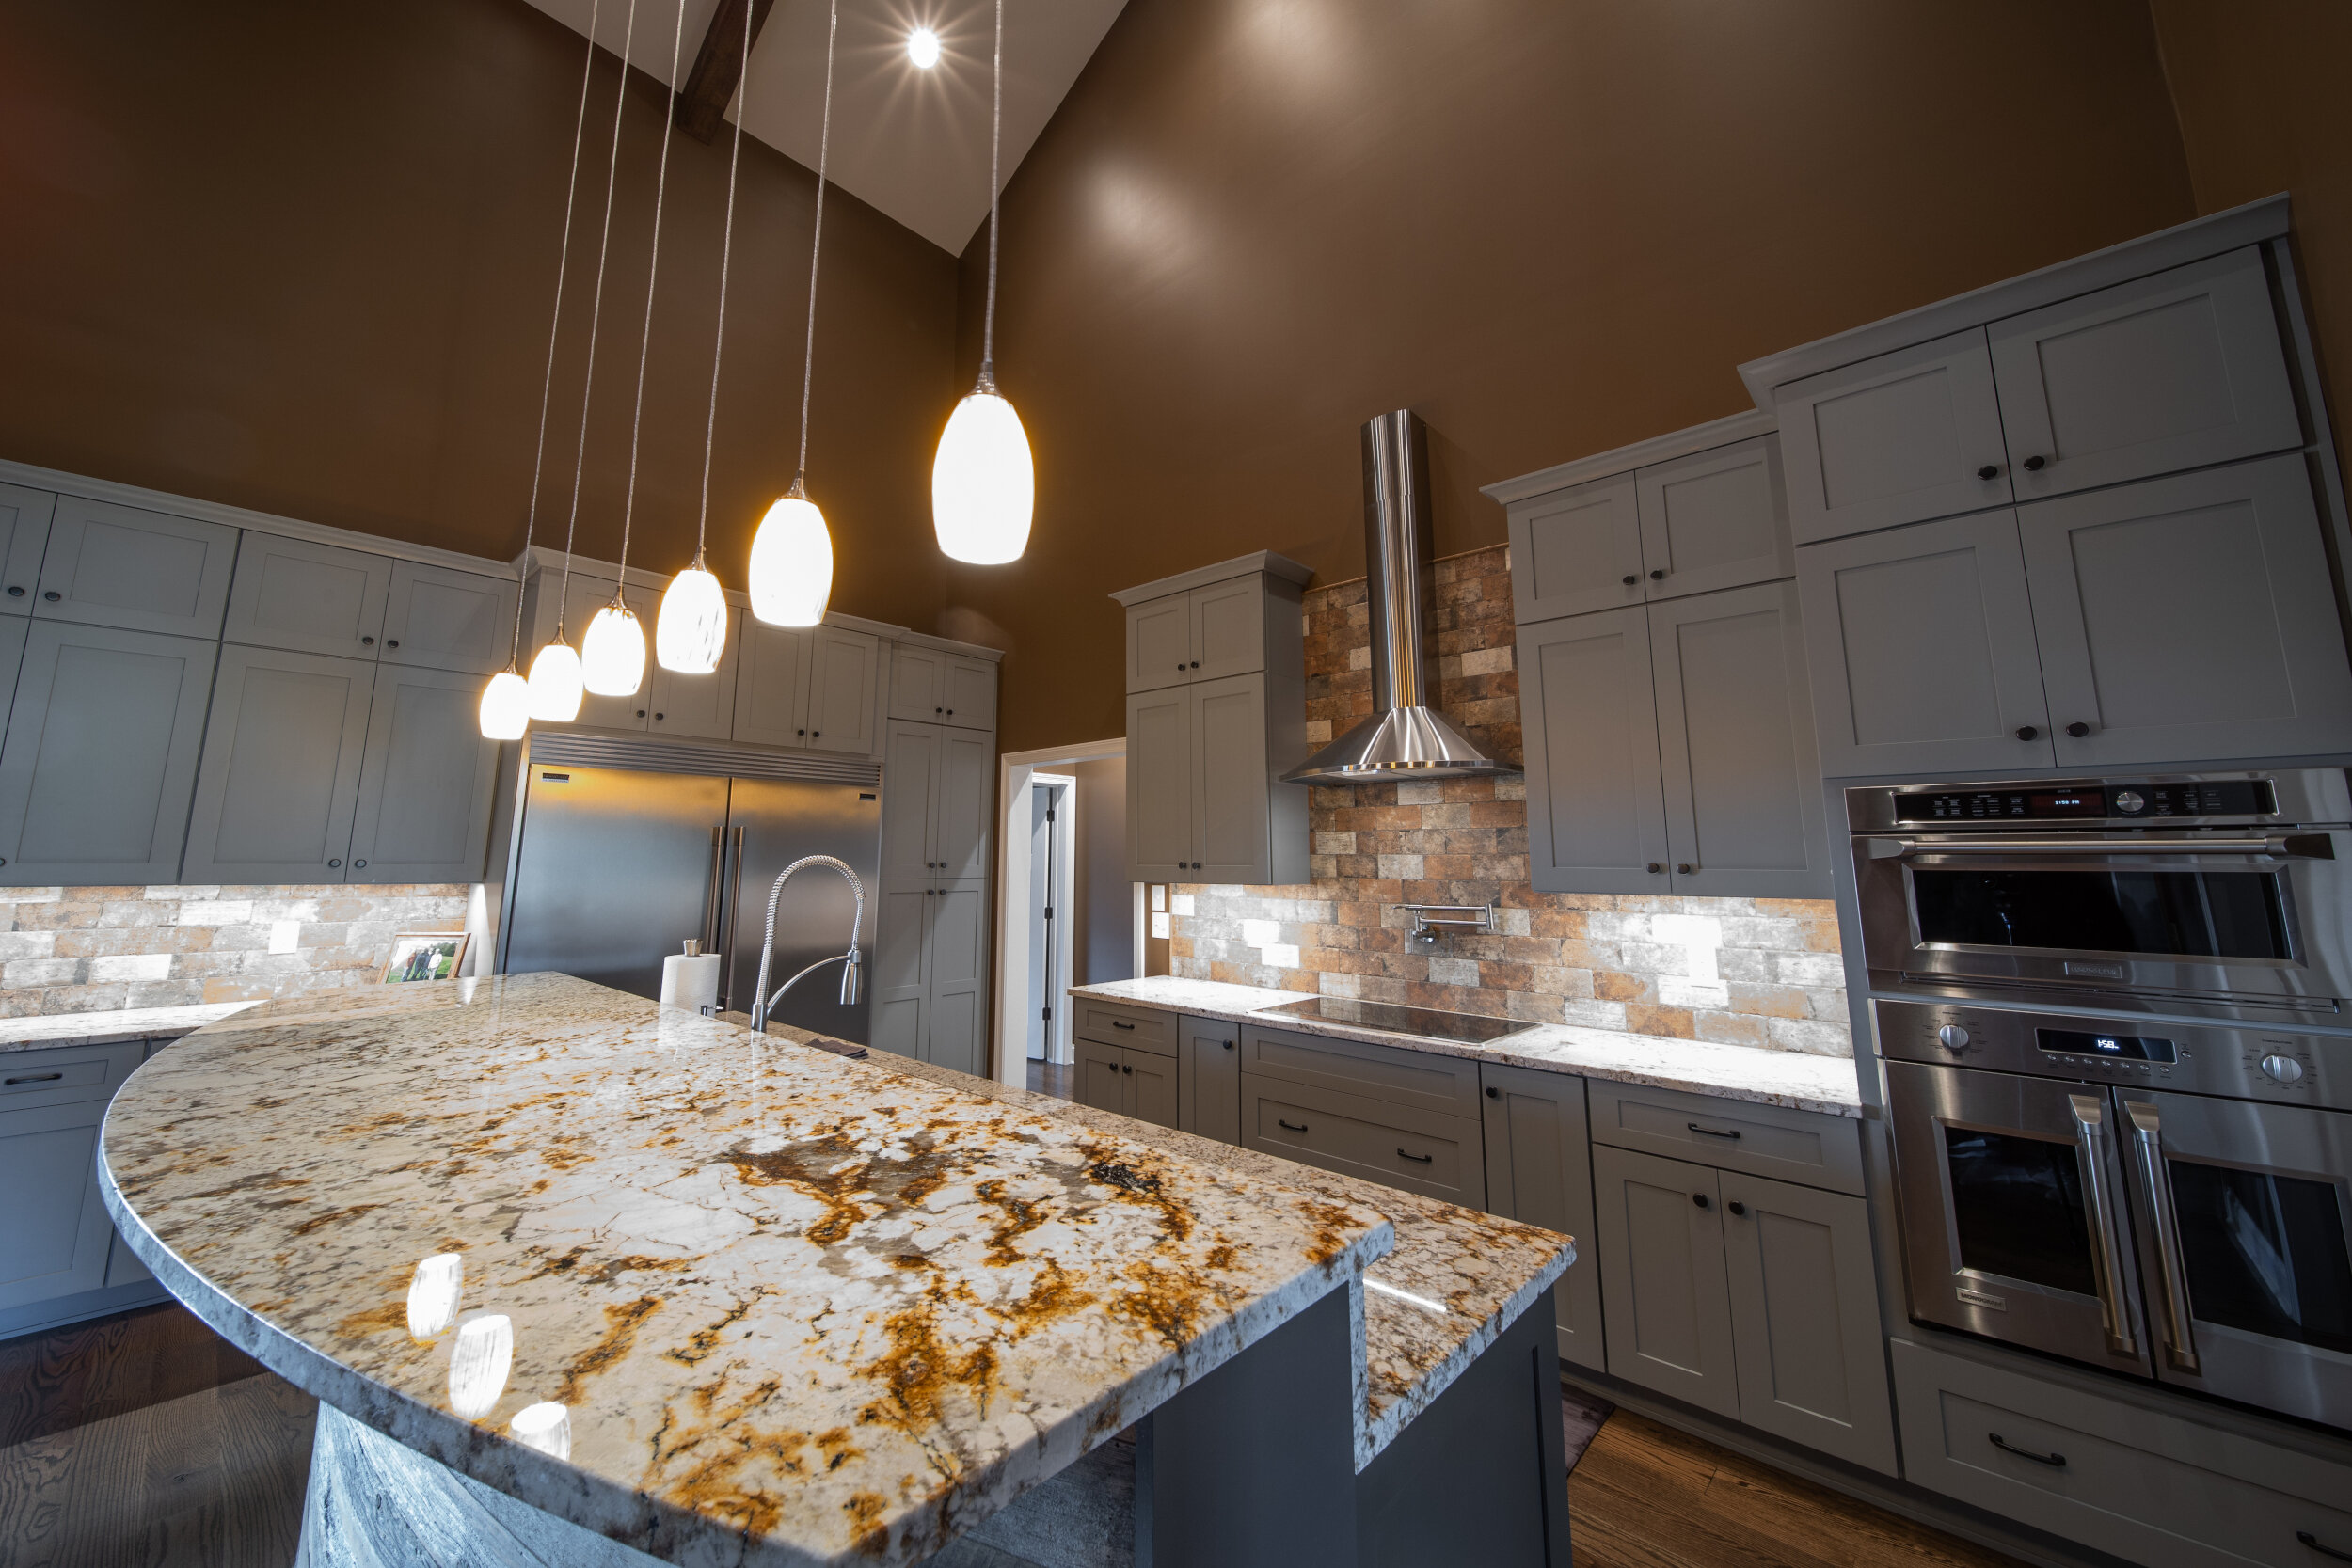 Keystone Kitchens Custom Cabinet Makers Carpenters And Remodeling Contractors Kitchen Bathroom Cabinets Closets Remodels Companies In Knoxville Tn Serving